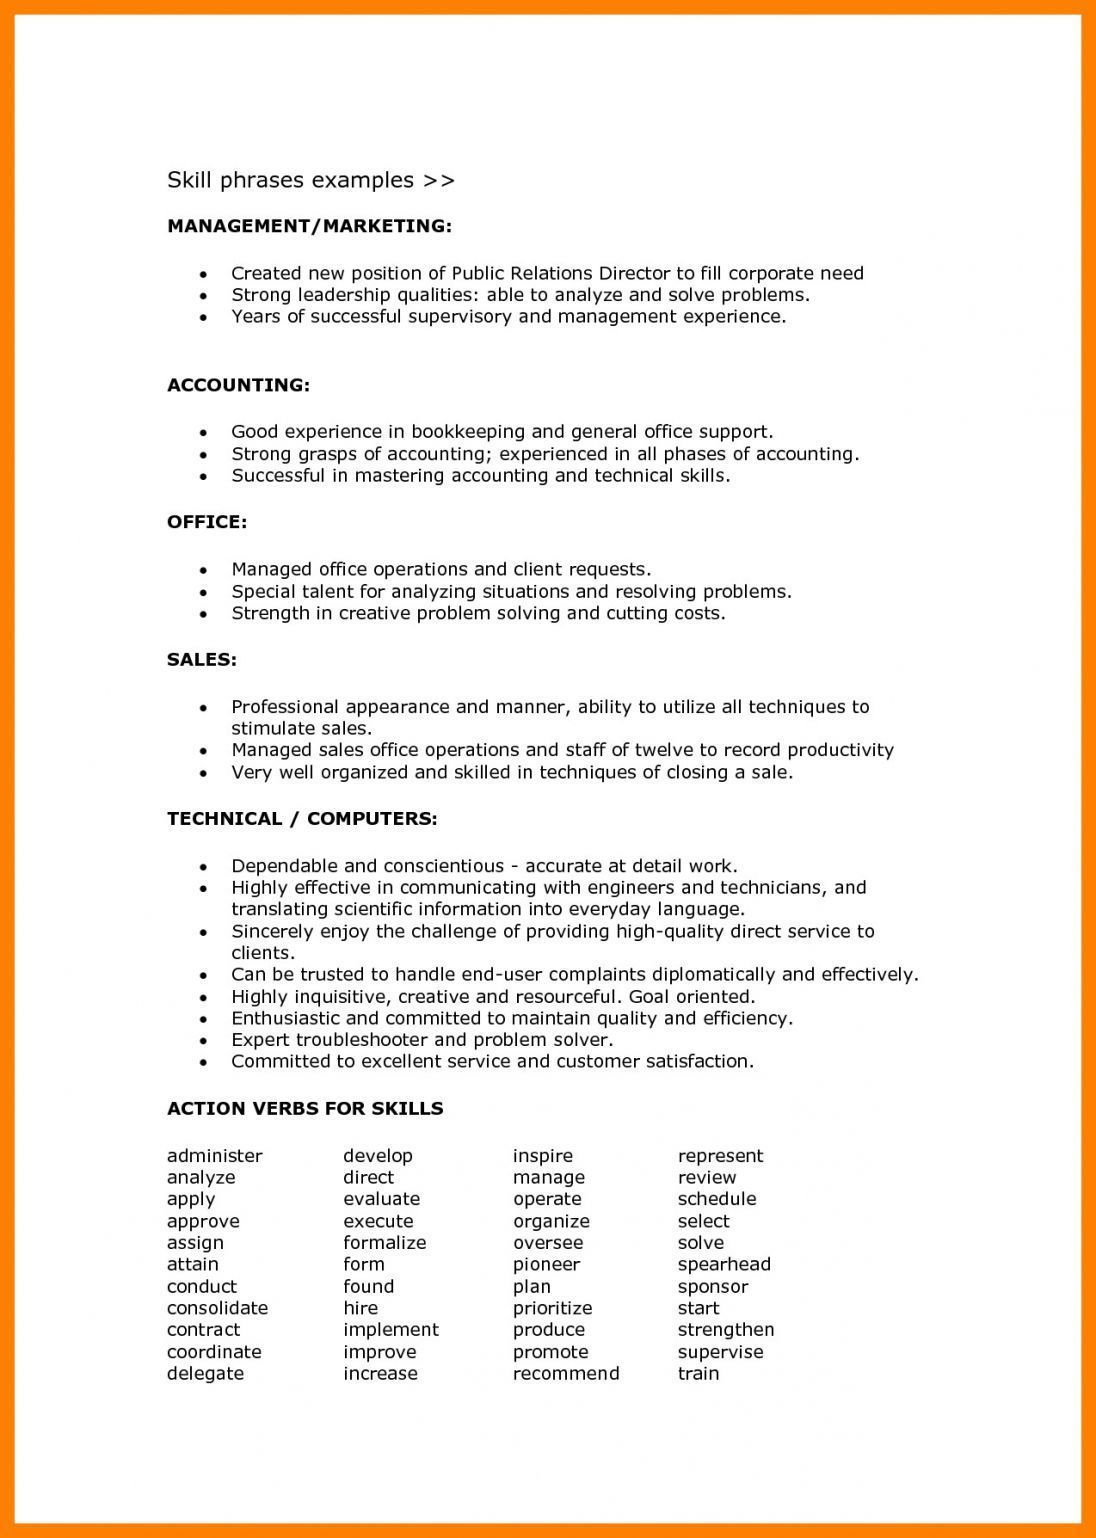 How To Write The Skills Section In Your Resume Resume Skills